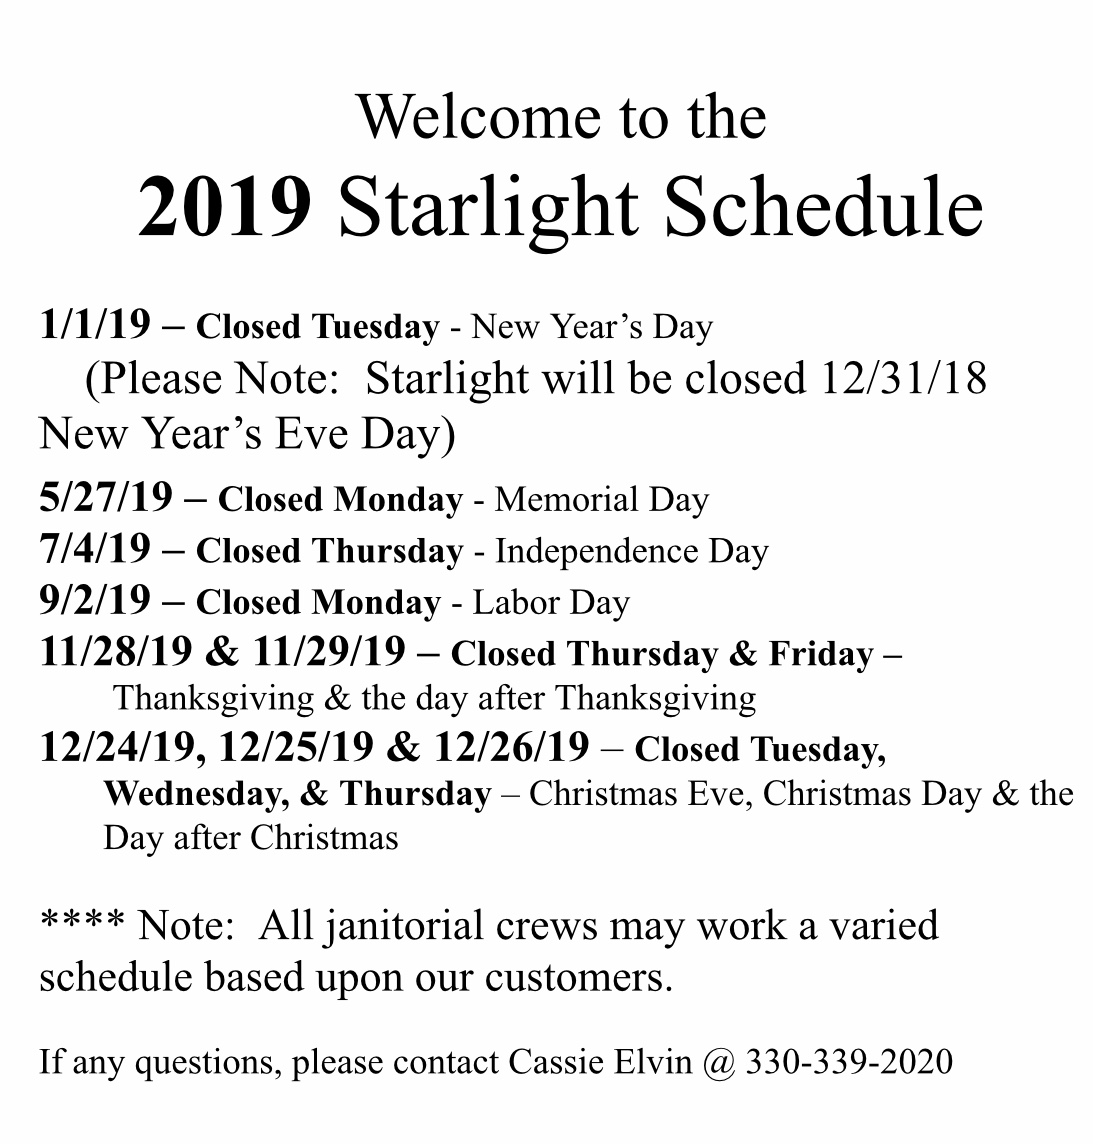 Starlight's  Calendar of closed days in 2019